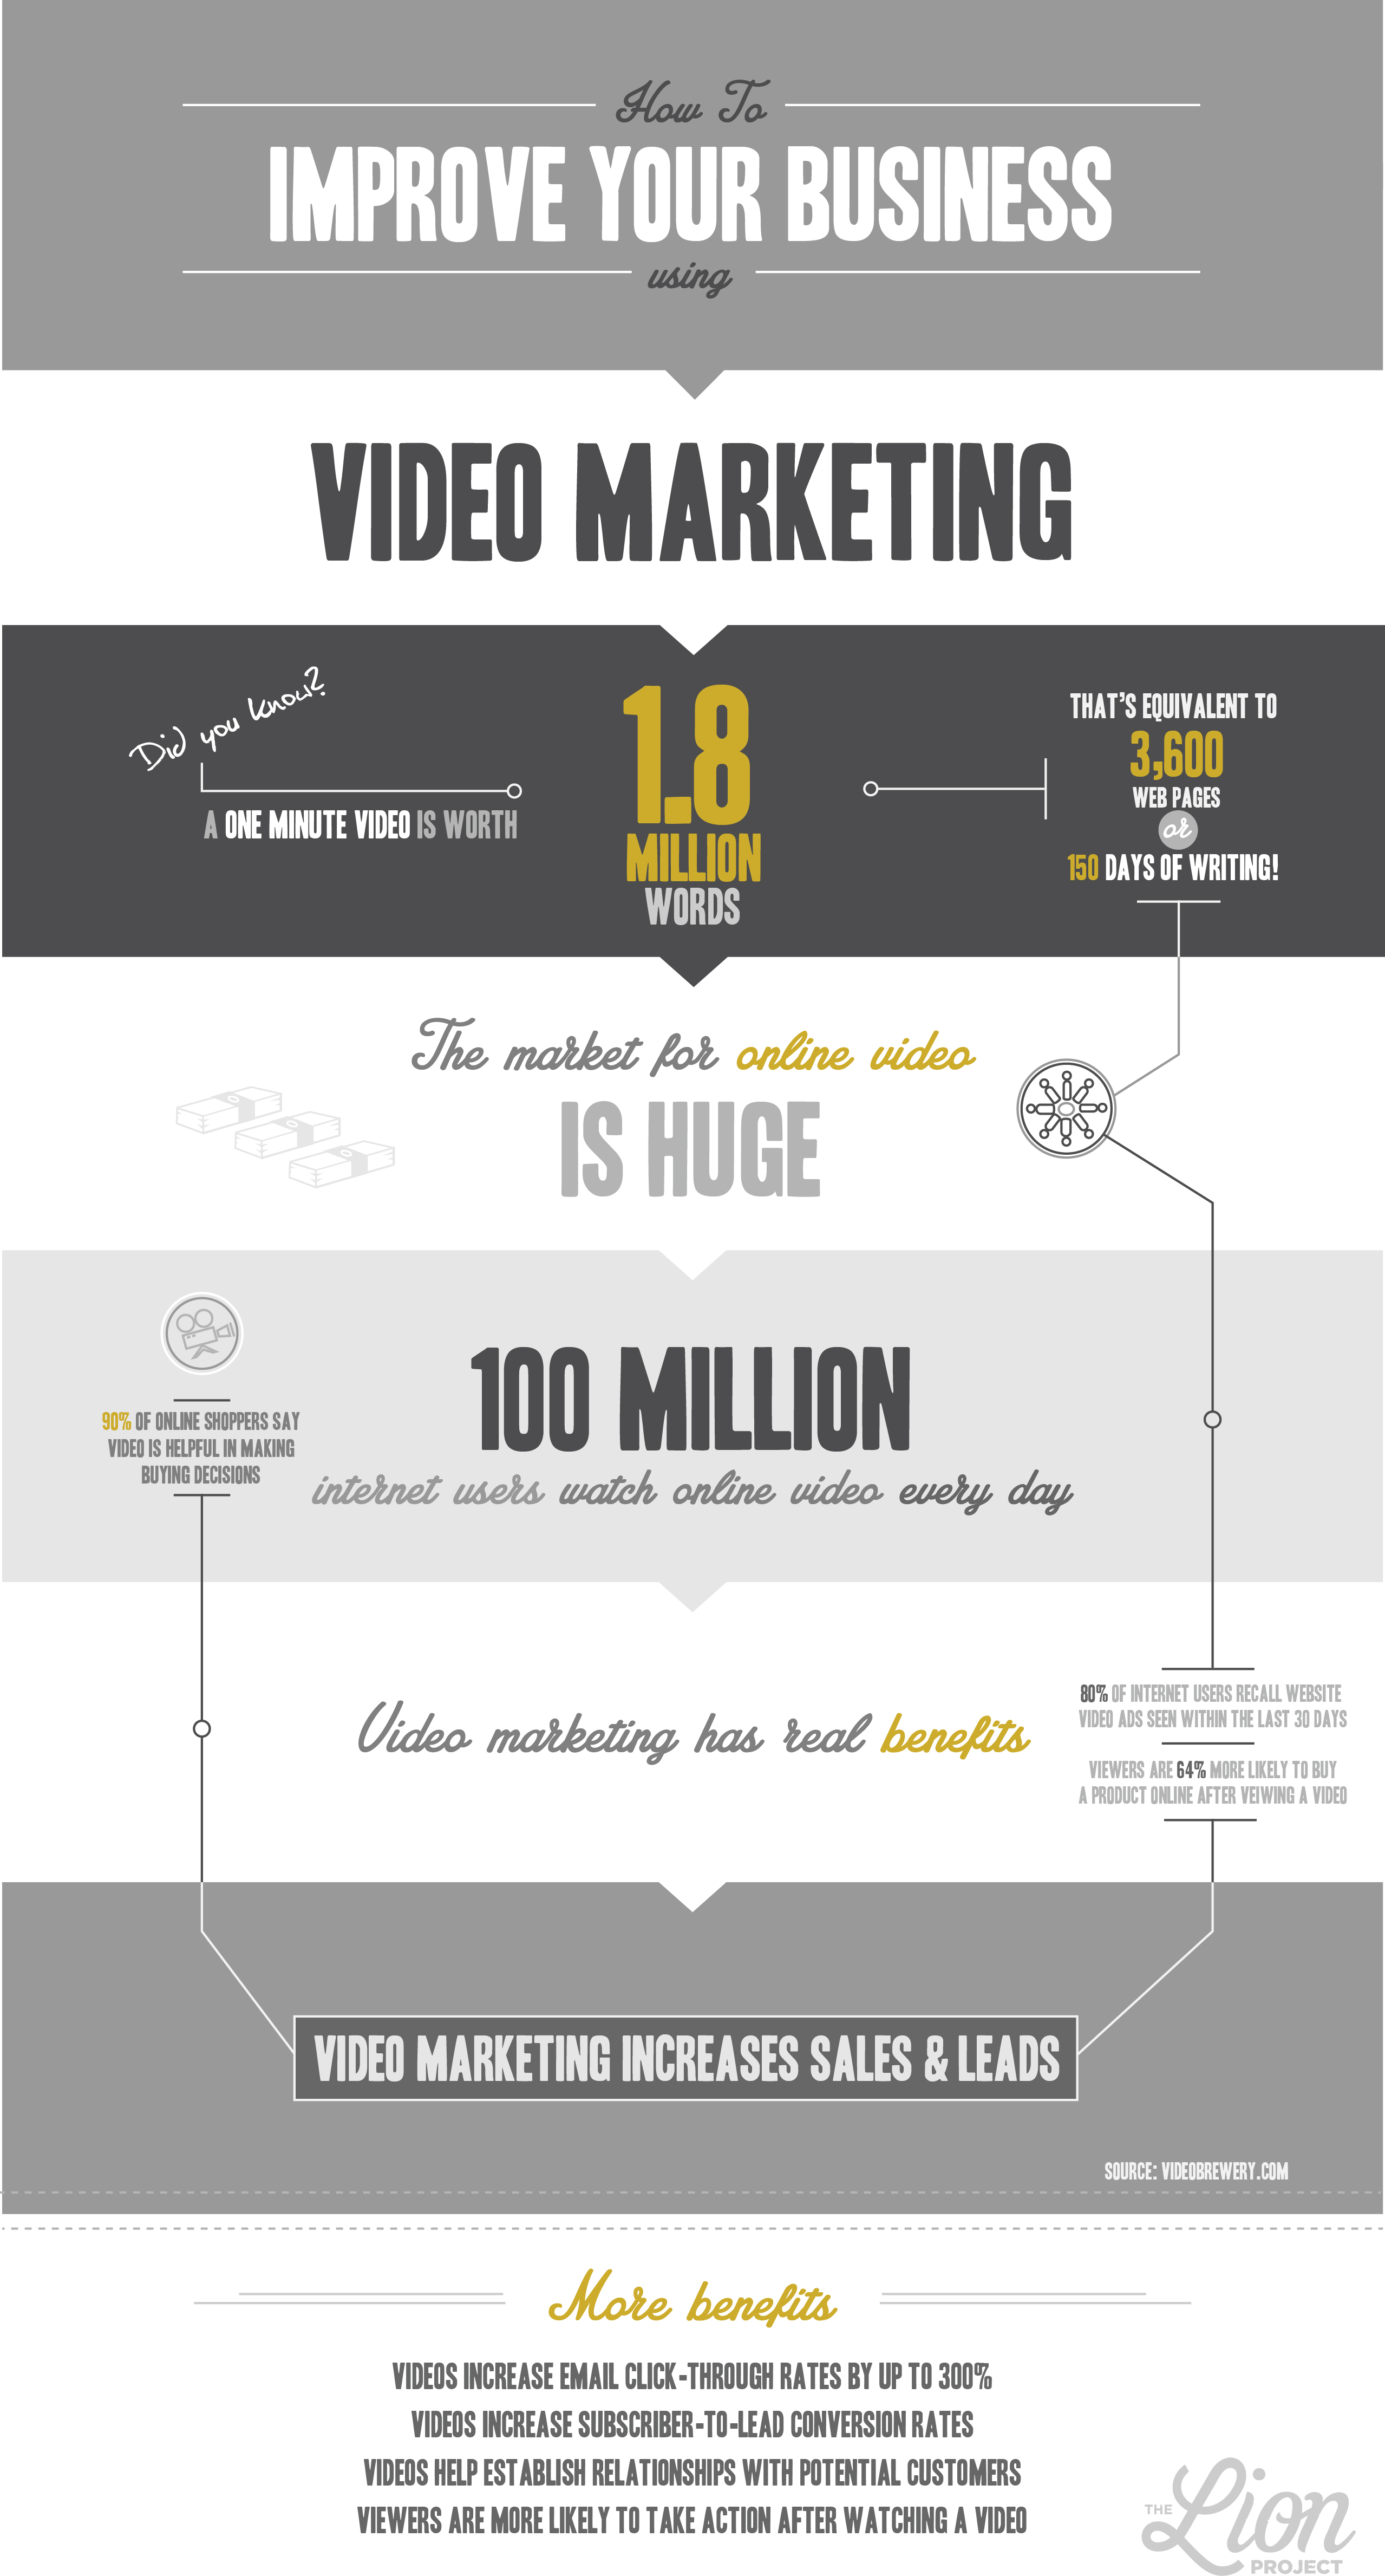 Video Marketing Infographic Blog Post